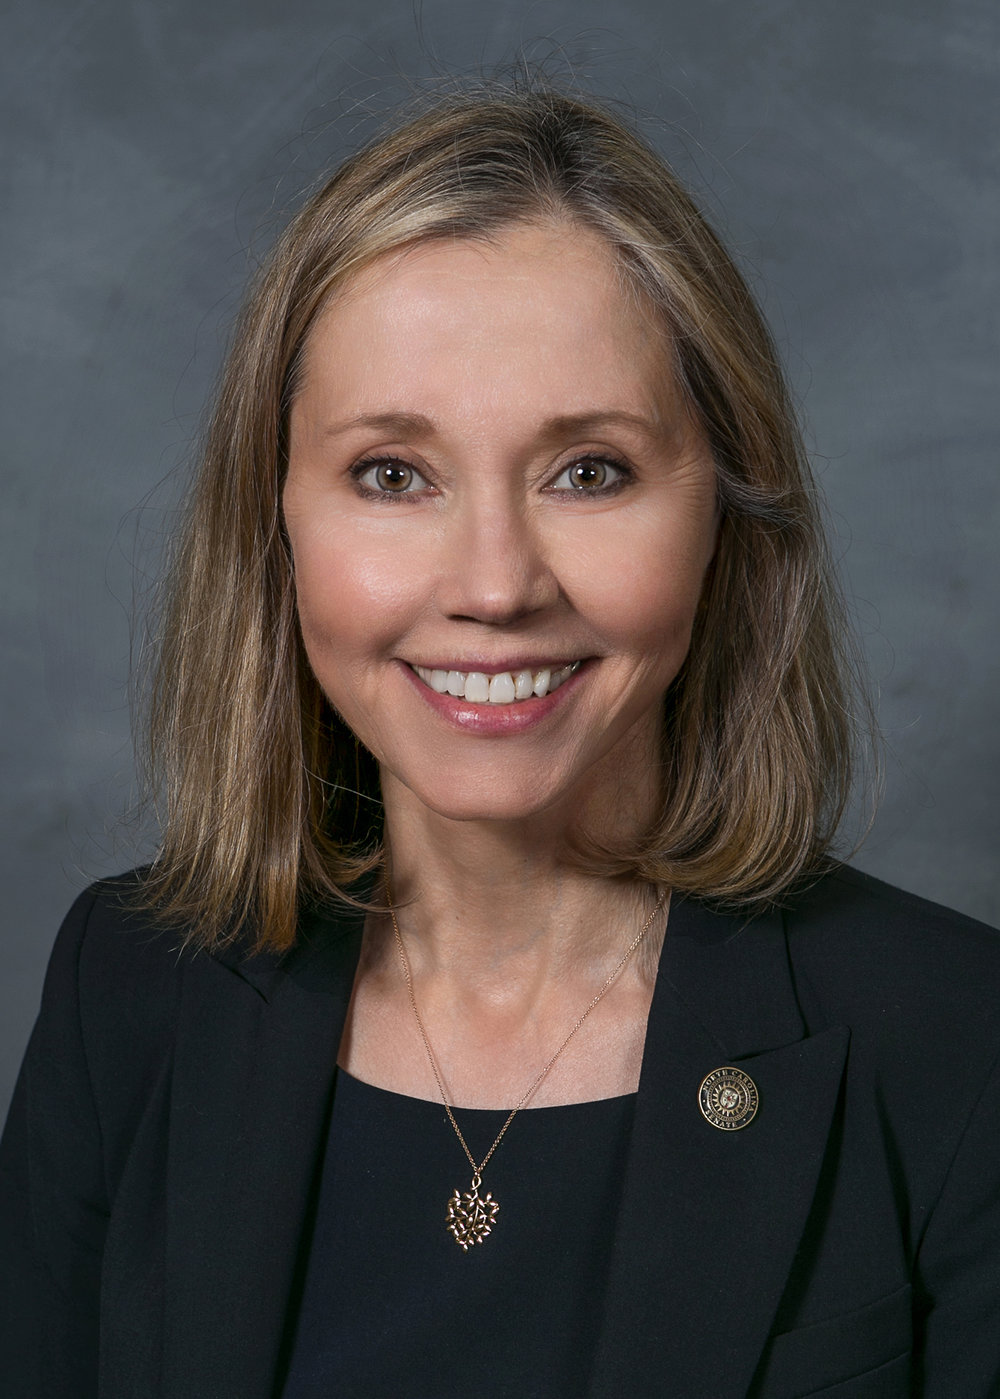 SENATOR TERRY VAN DUYNN - DISTRICT 49